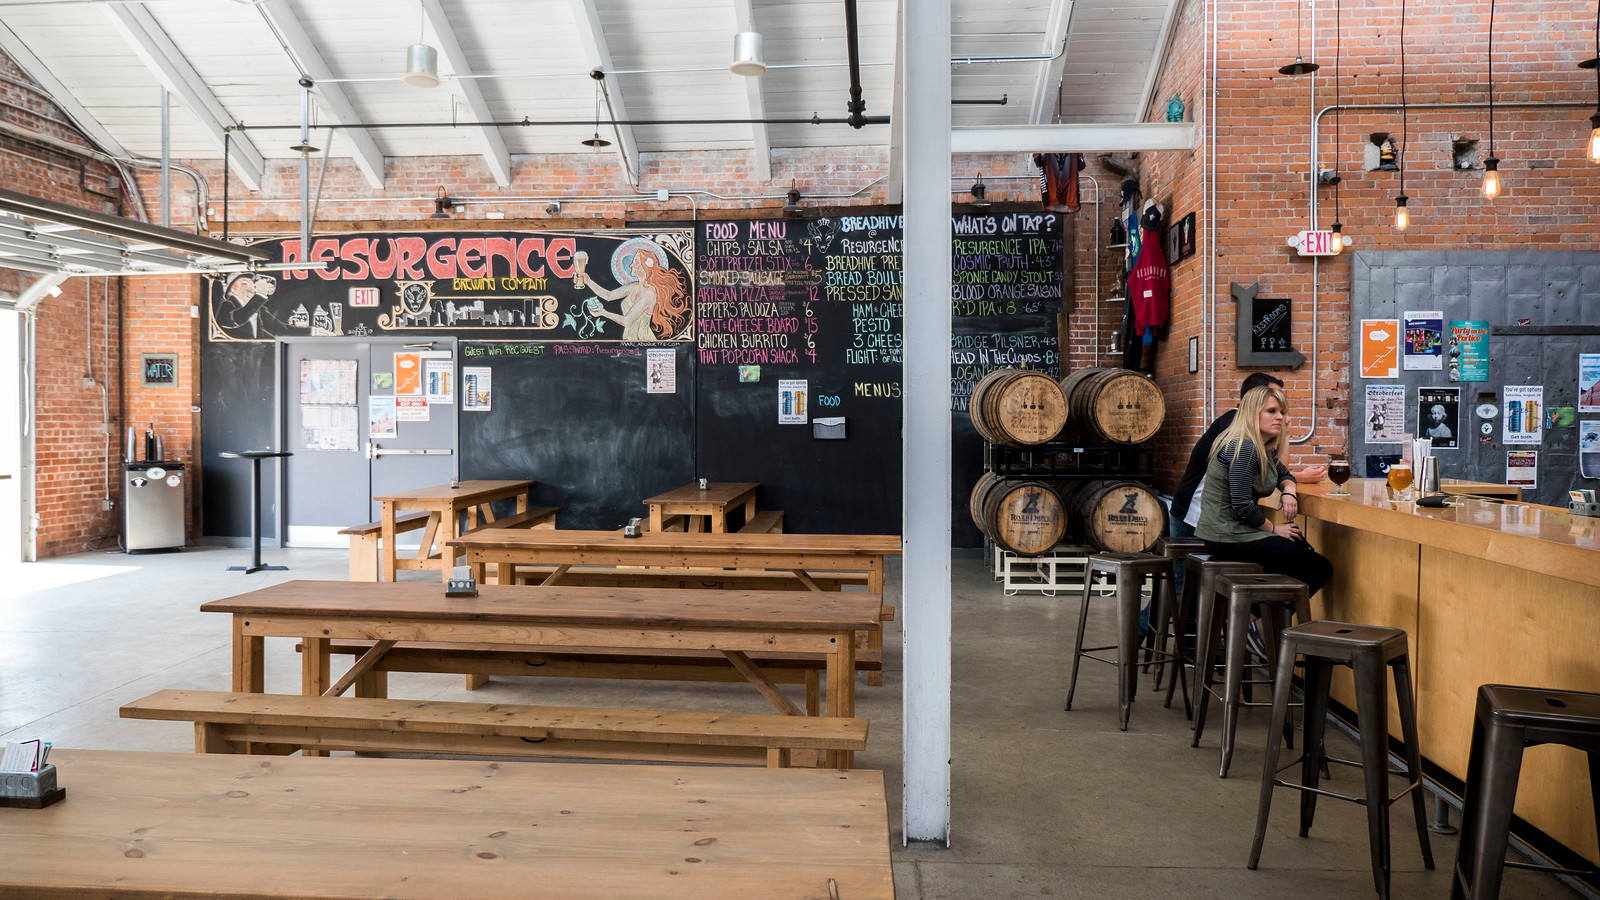 Discover Buffalo Breweries: A Guide for Beer Lovers - Resurgence Brewing Company